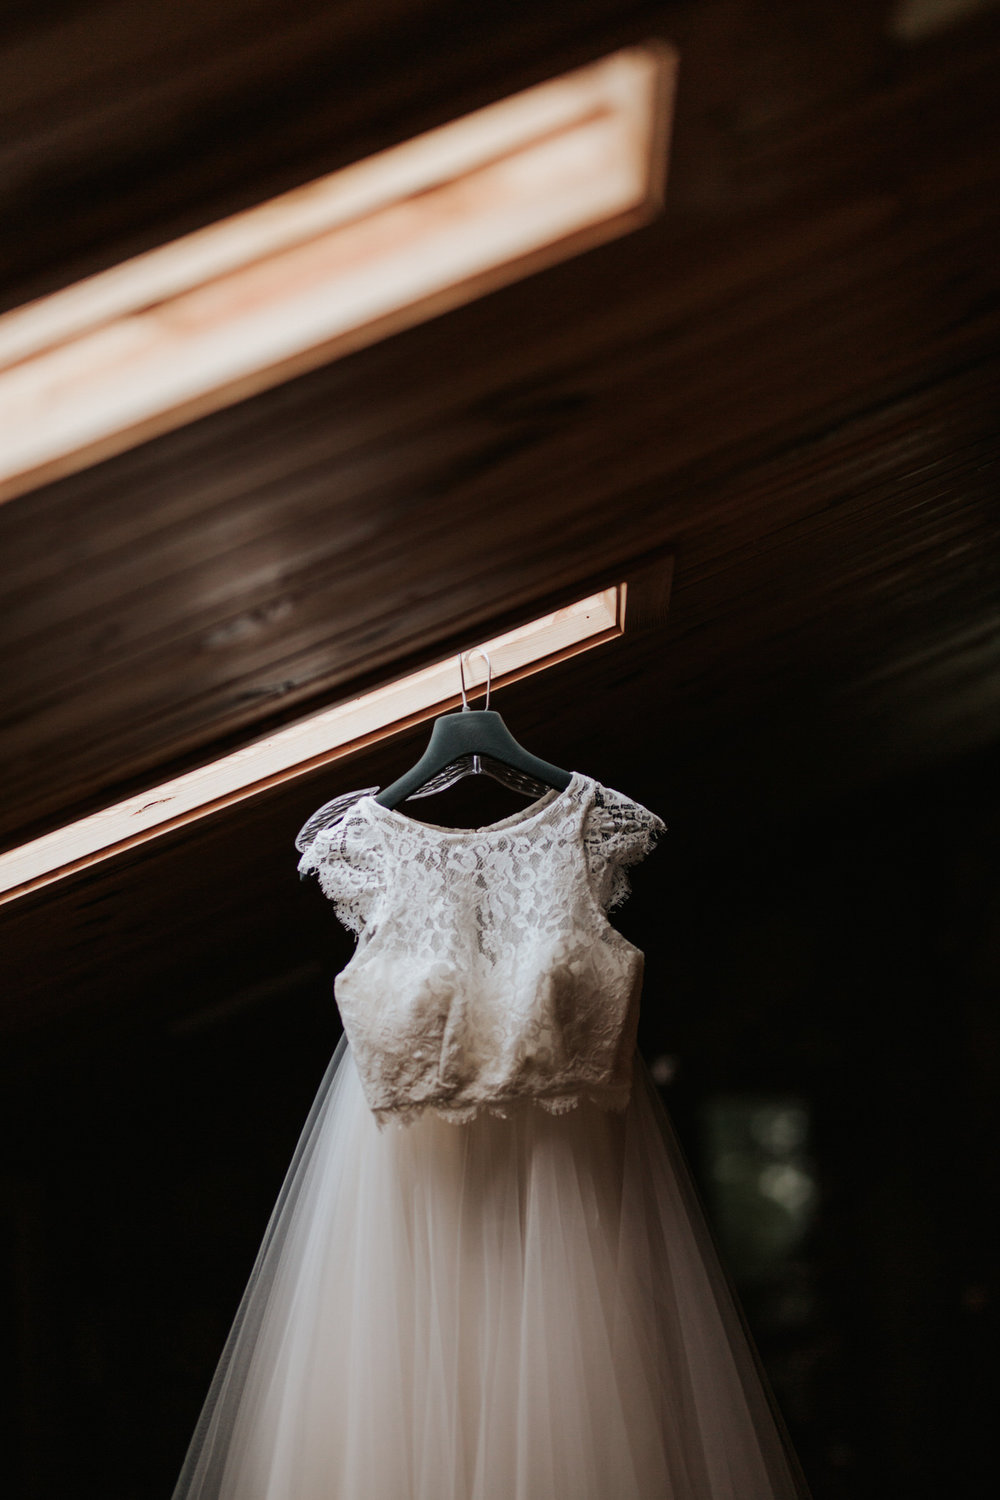 Two piece wedding dress hanging up